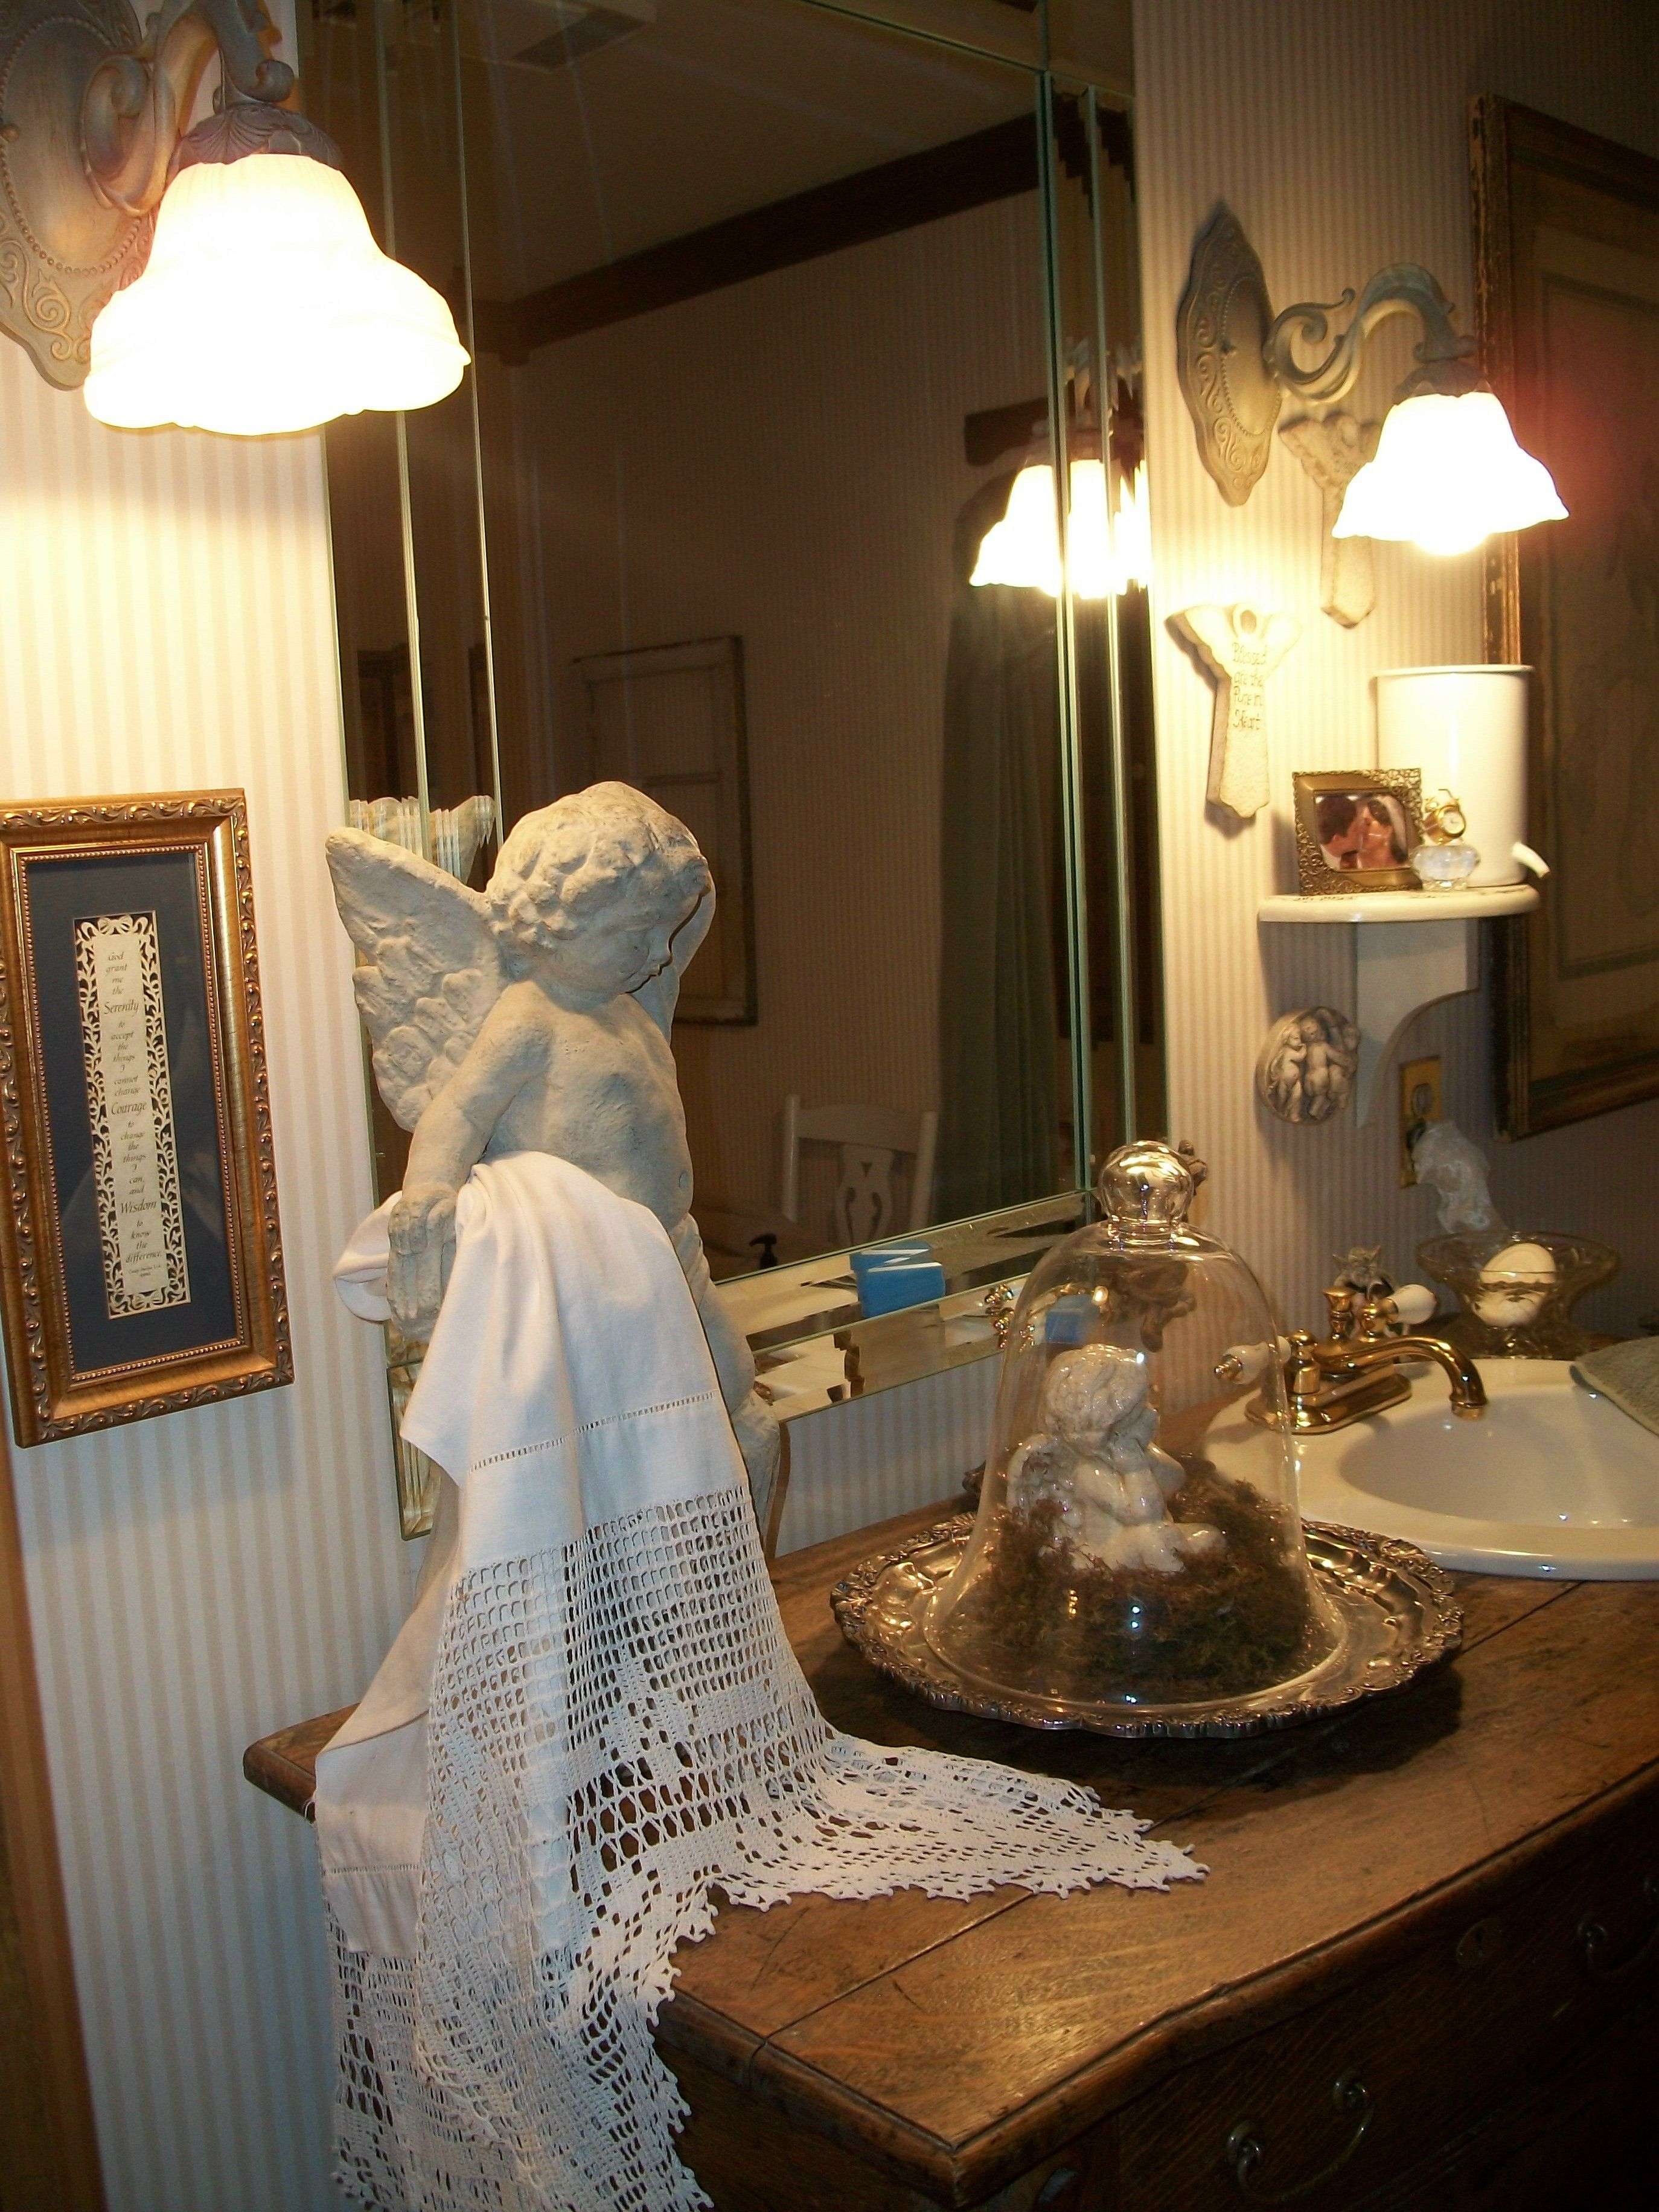 Antique Sideboard for sink, concrete angel, crochet scarf, cloche on antique silver tray.